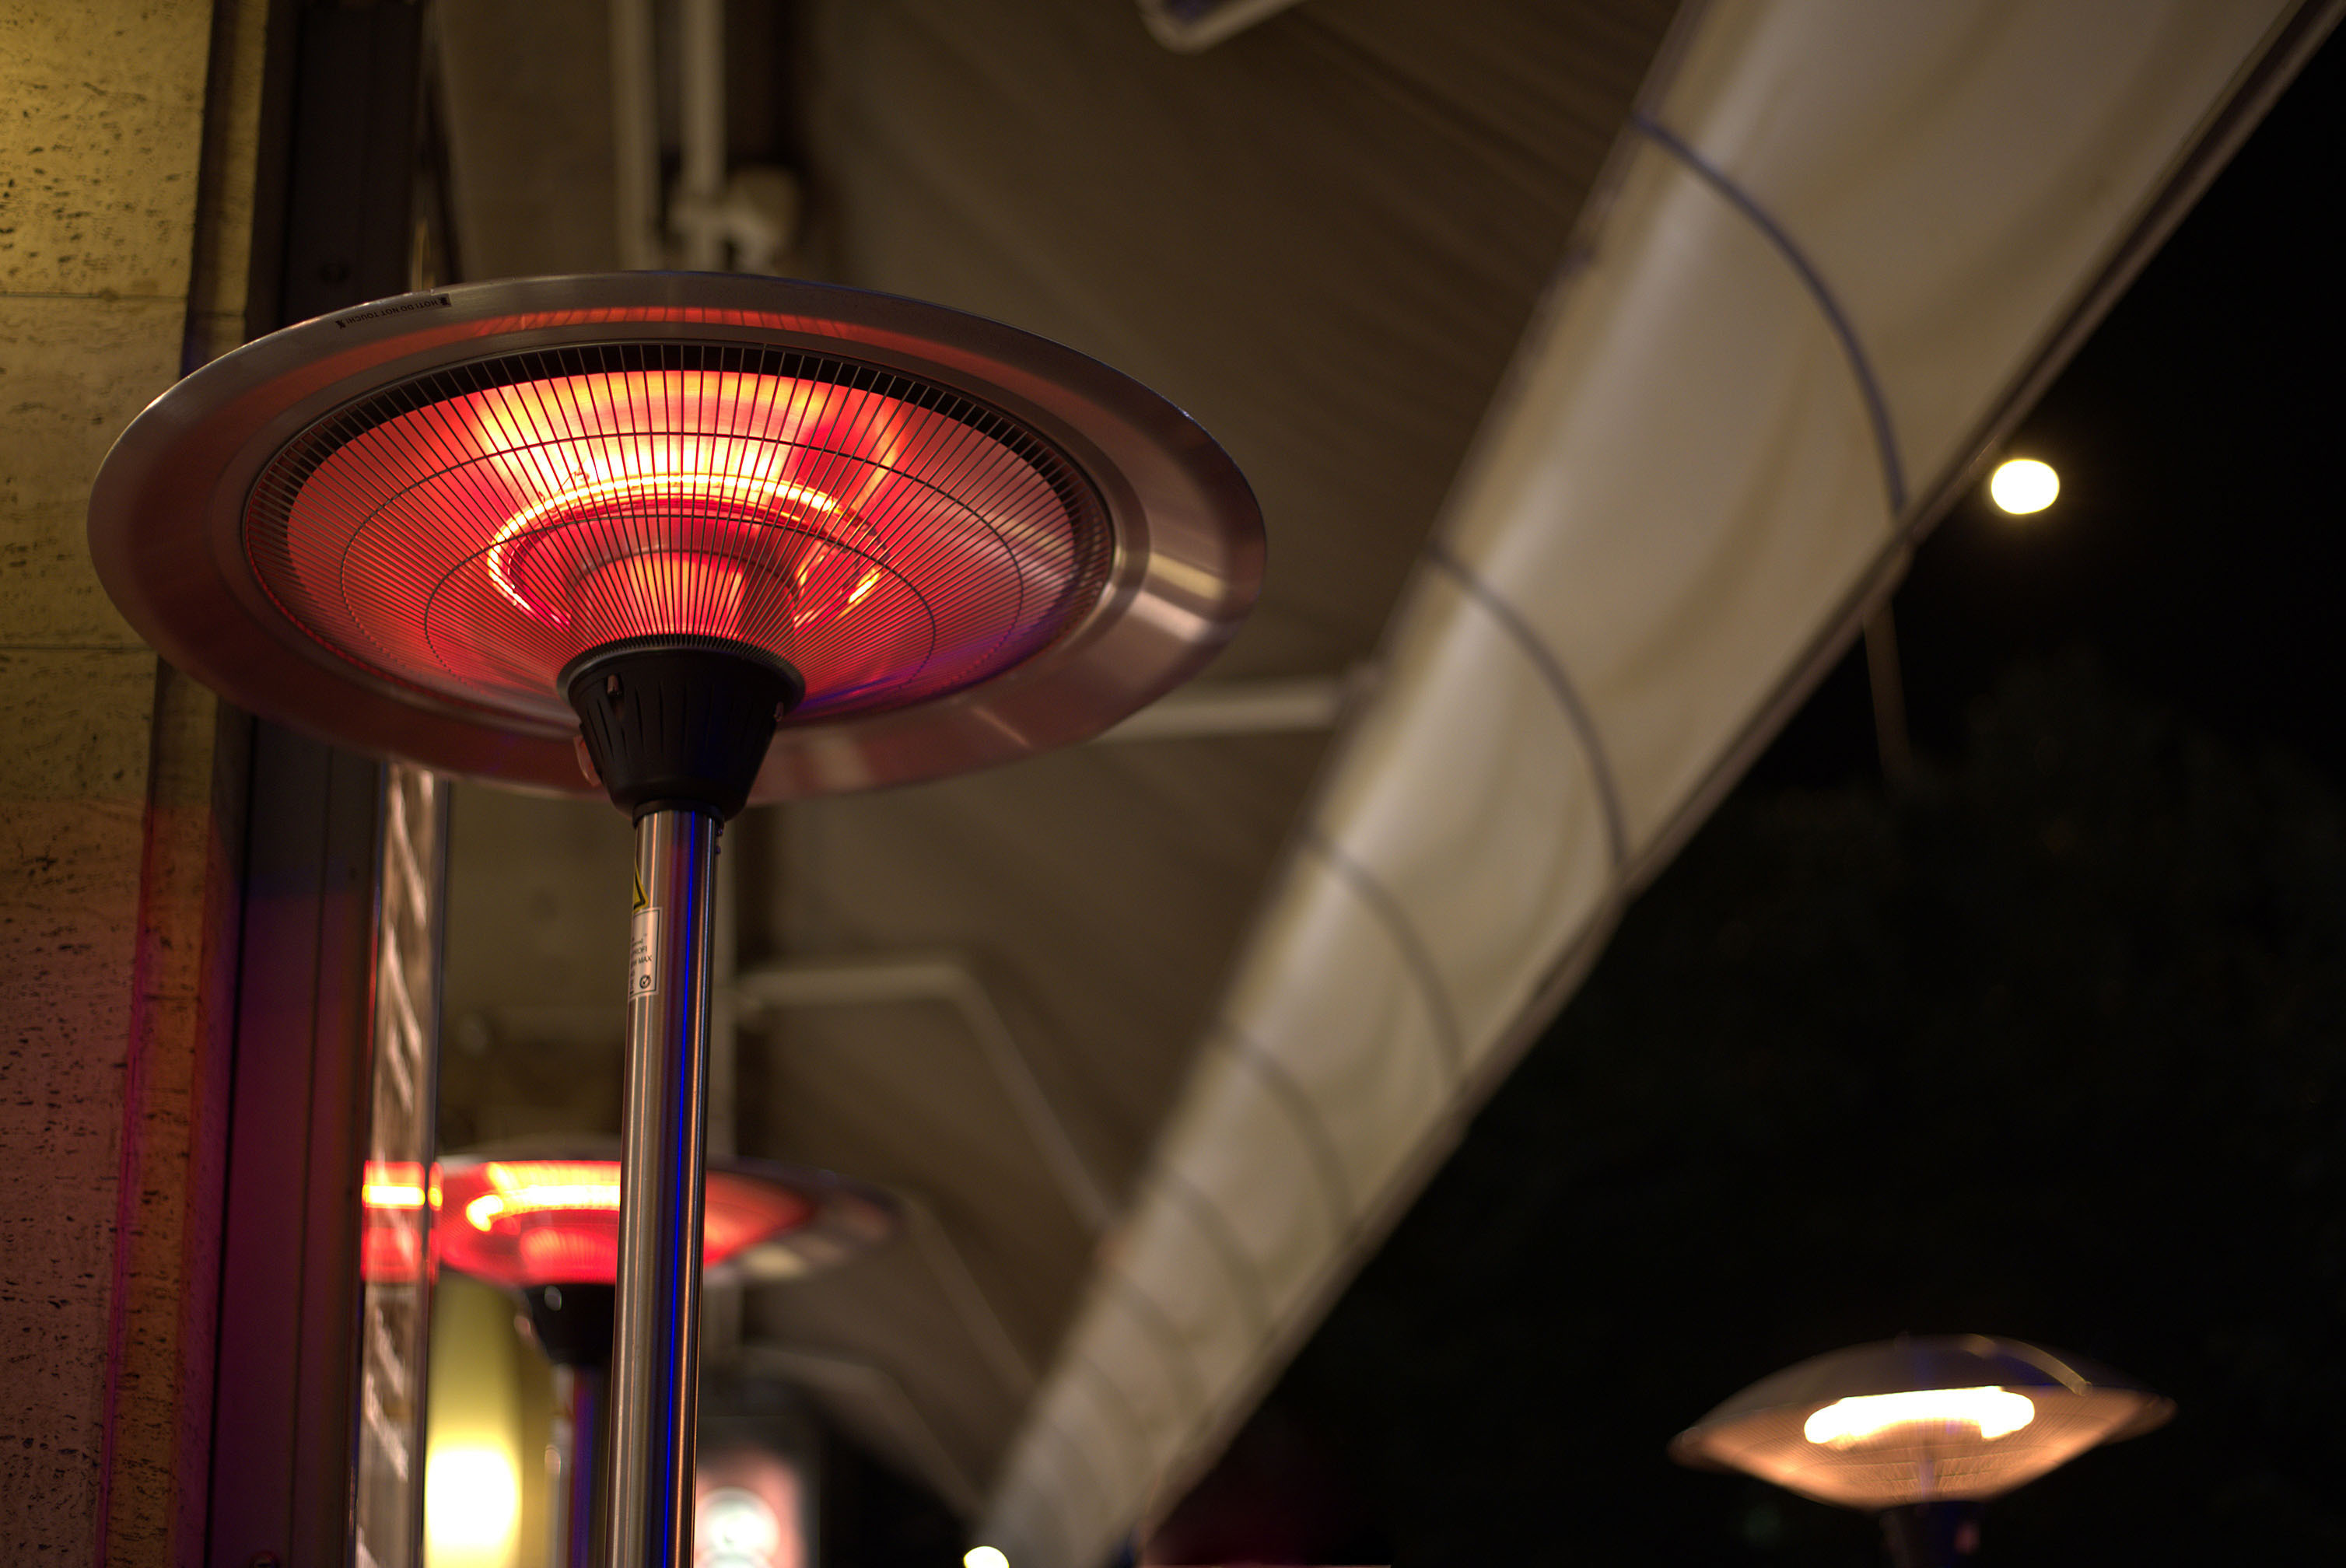 Shot from below, an electric heat lamp glows under the awning of a restaurant at night.